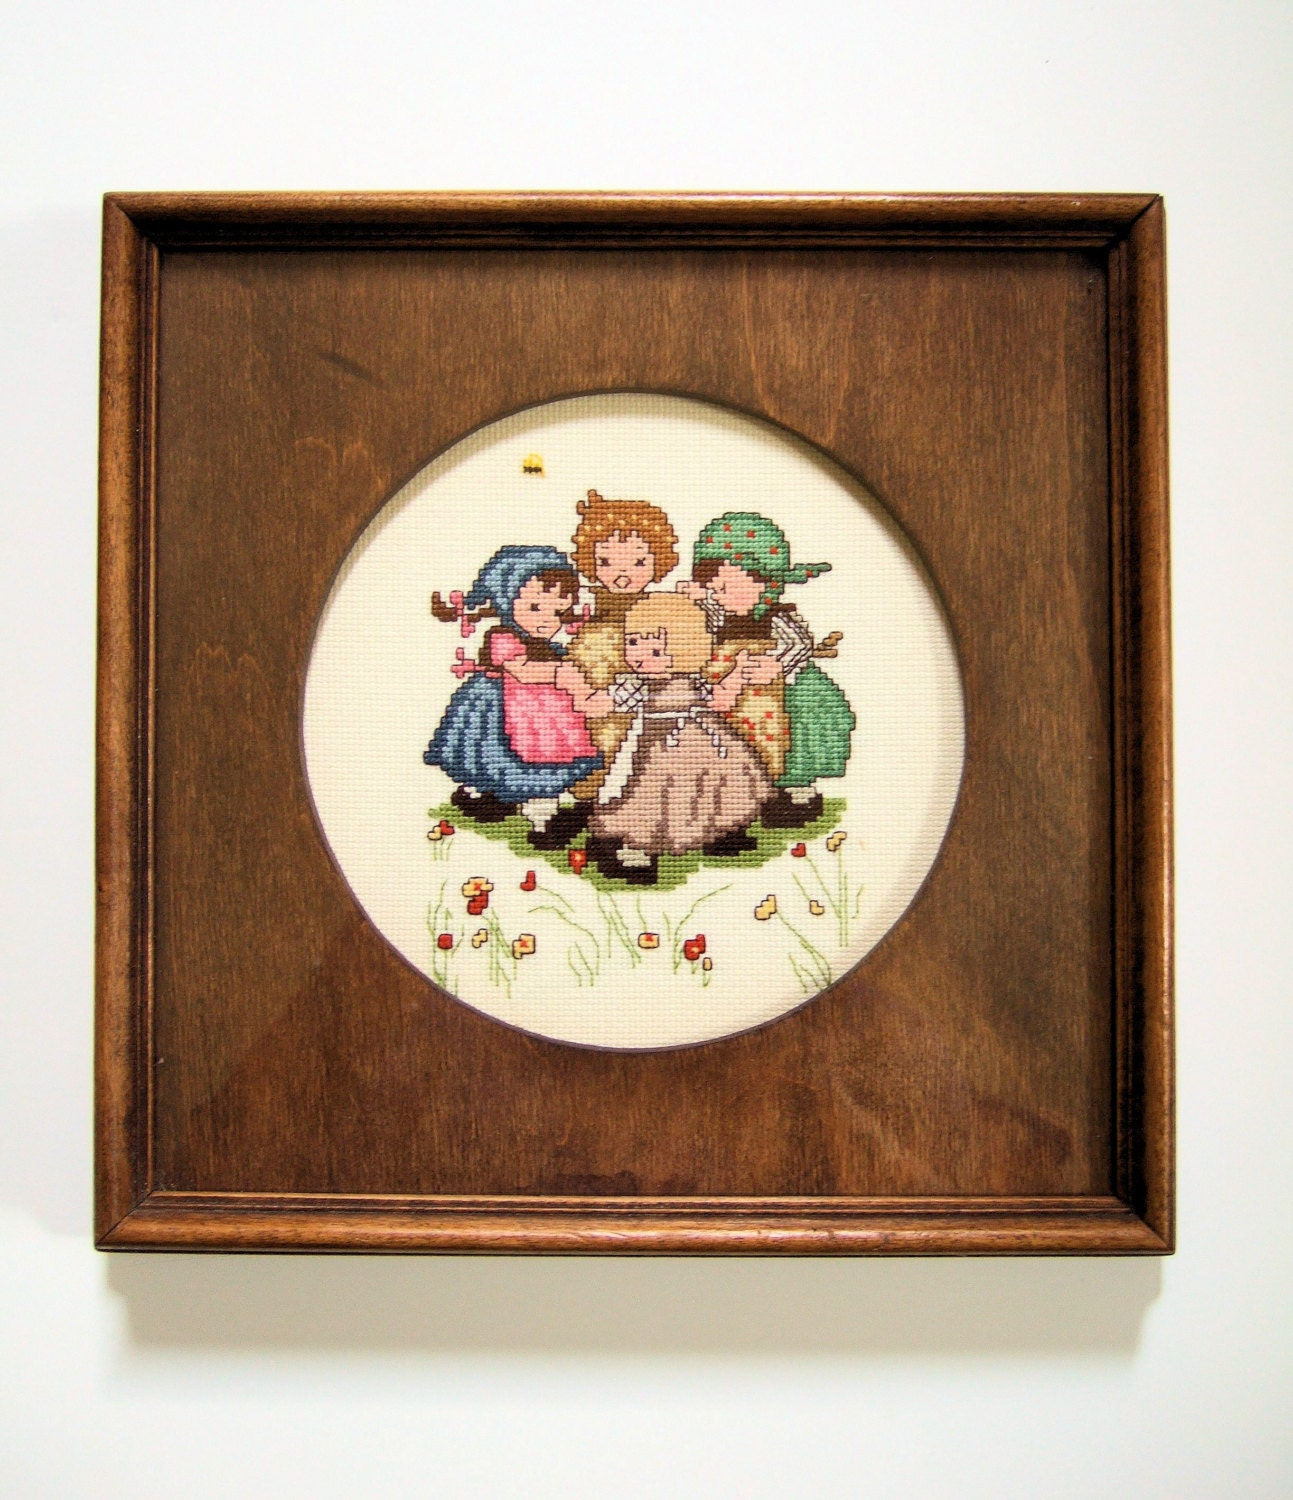 Vintage framed cross stitch wall hanging little girls dancing for Home decor gifts